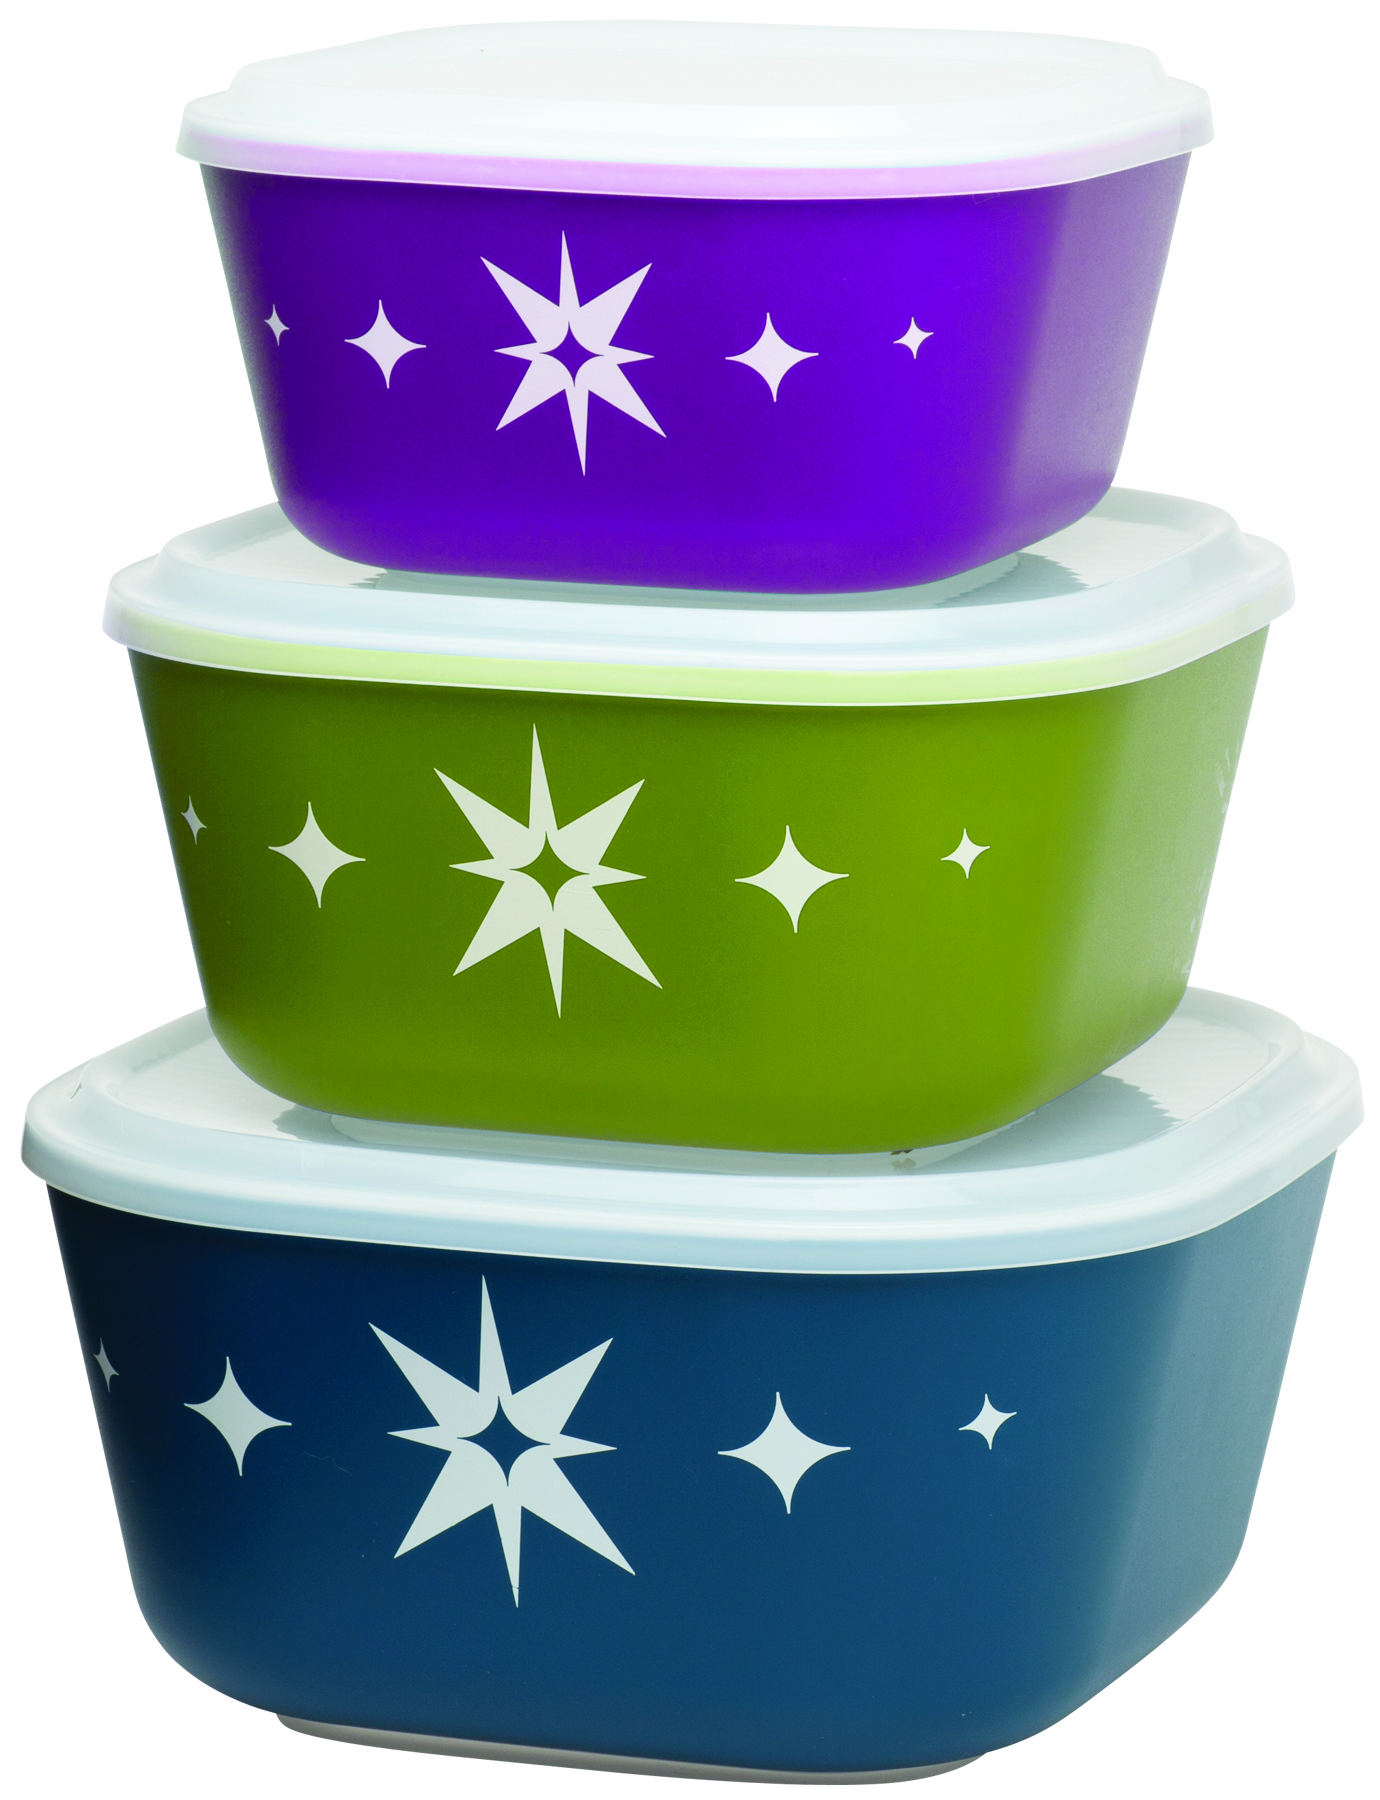 Food Storage Containers for Home and On The Go Kitchenware News